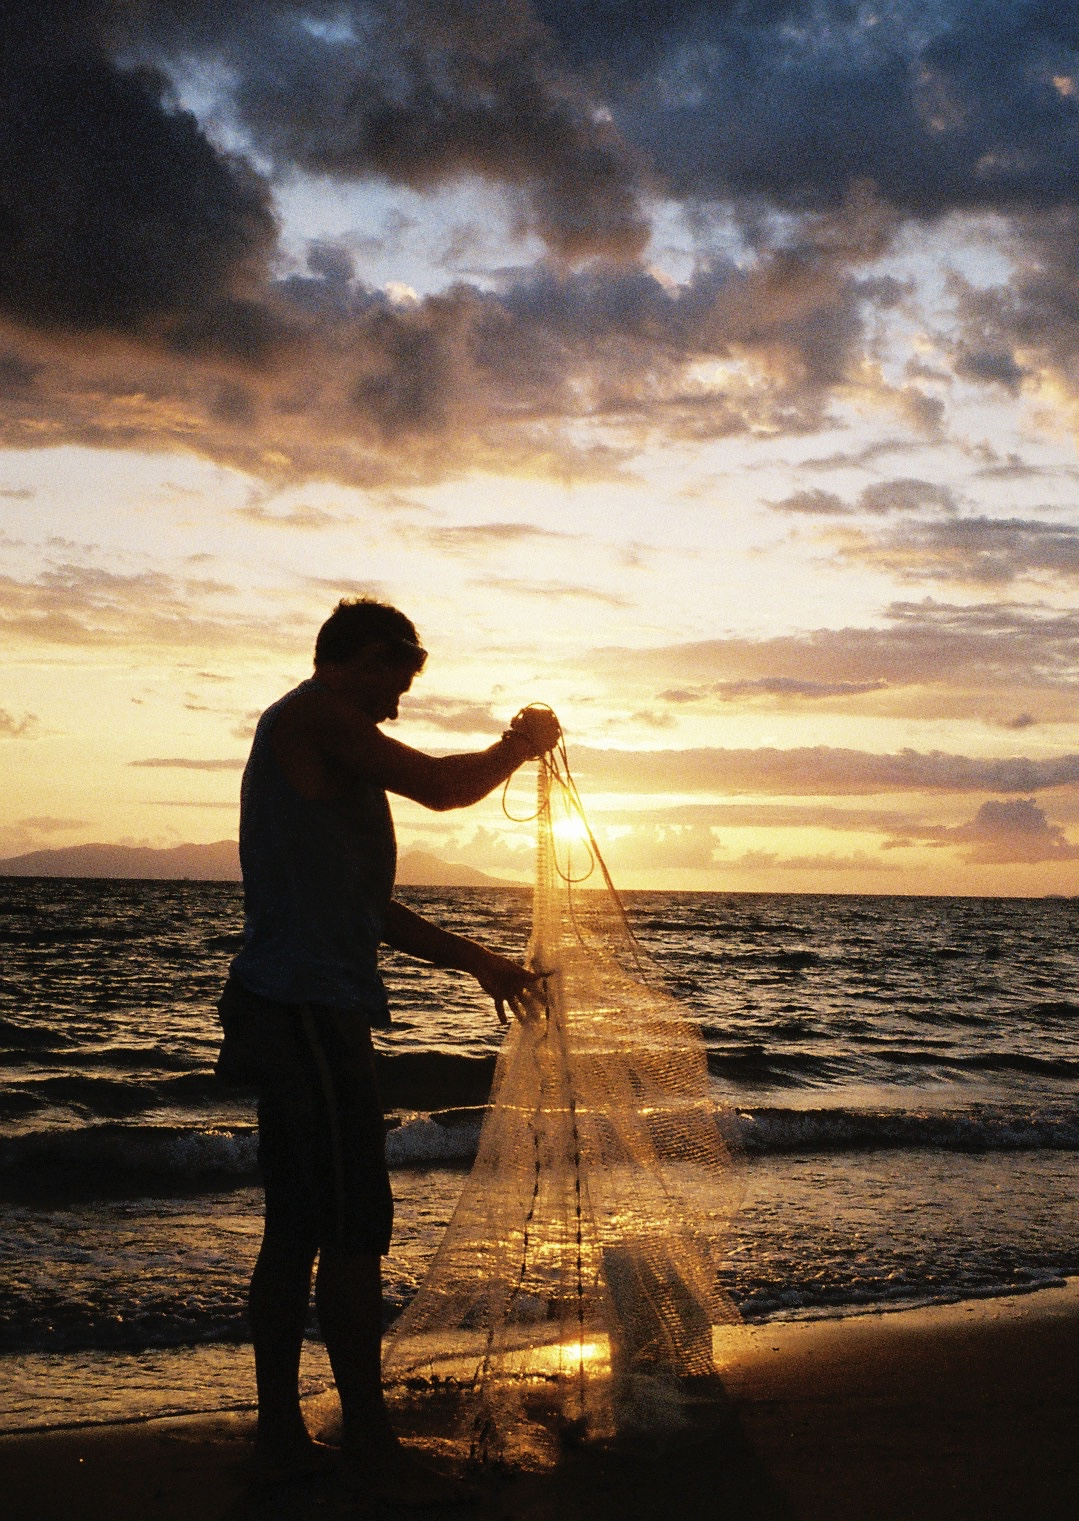 Collecting bait with a cast net is only legal in Queensland, Australia